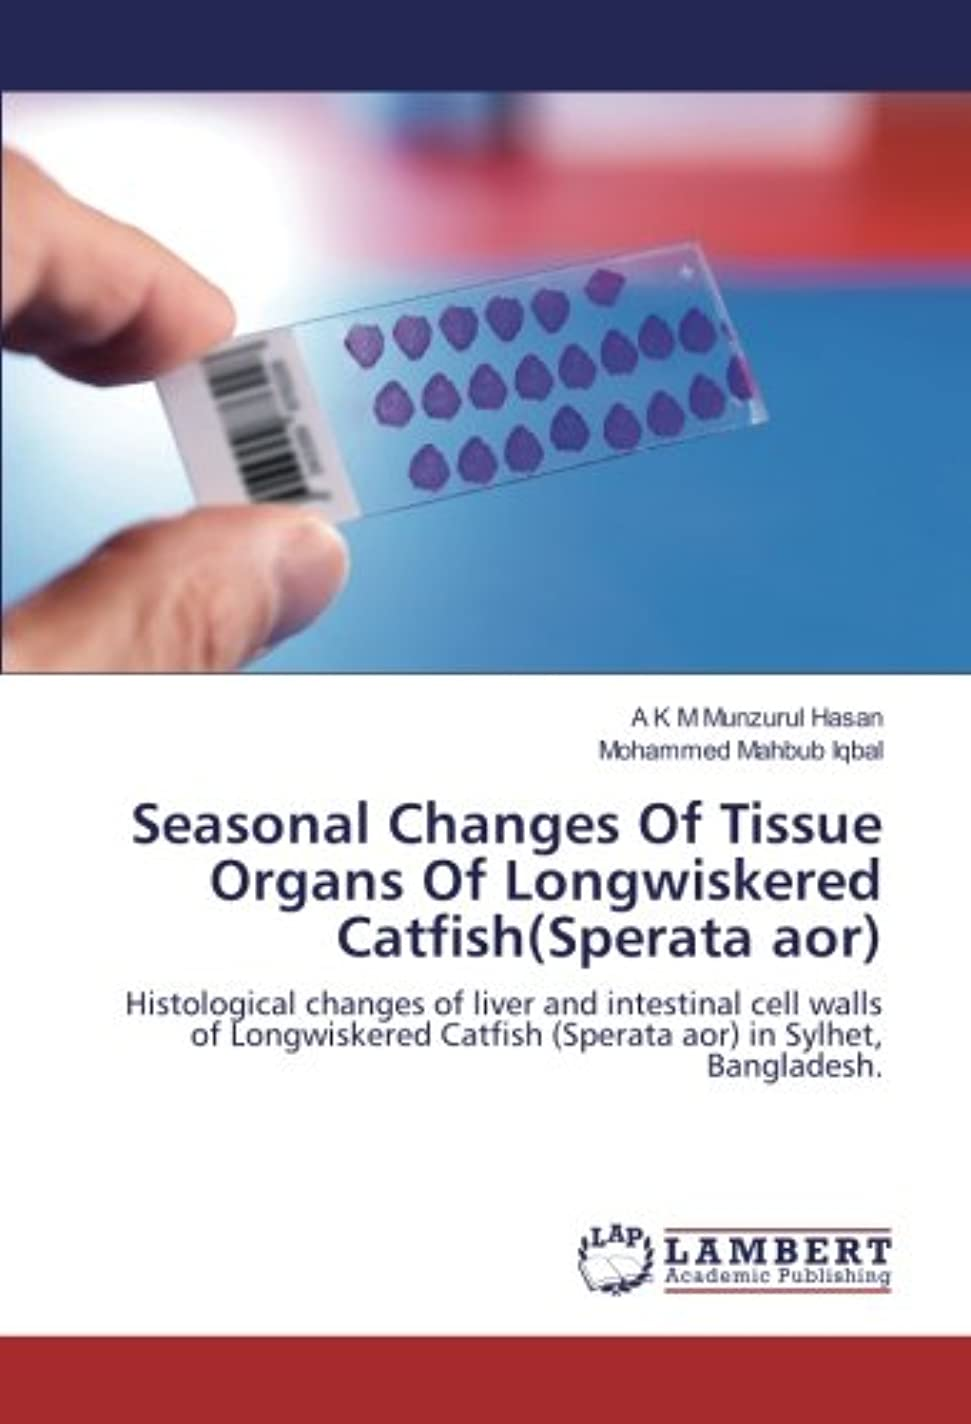 スマイル船外クラウドSeasonal Changes Of Tissue Organs Of Longwiskered Catfish(Sperata aor): Histological changes of liver and intestinal cell walls of Longwiskered Catfish (Sperata aor) in Sylhet, Bangladesh.